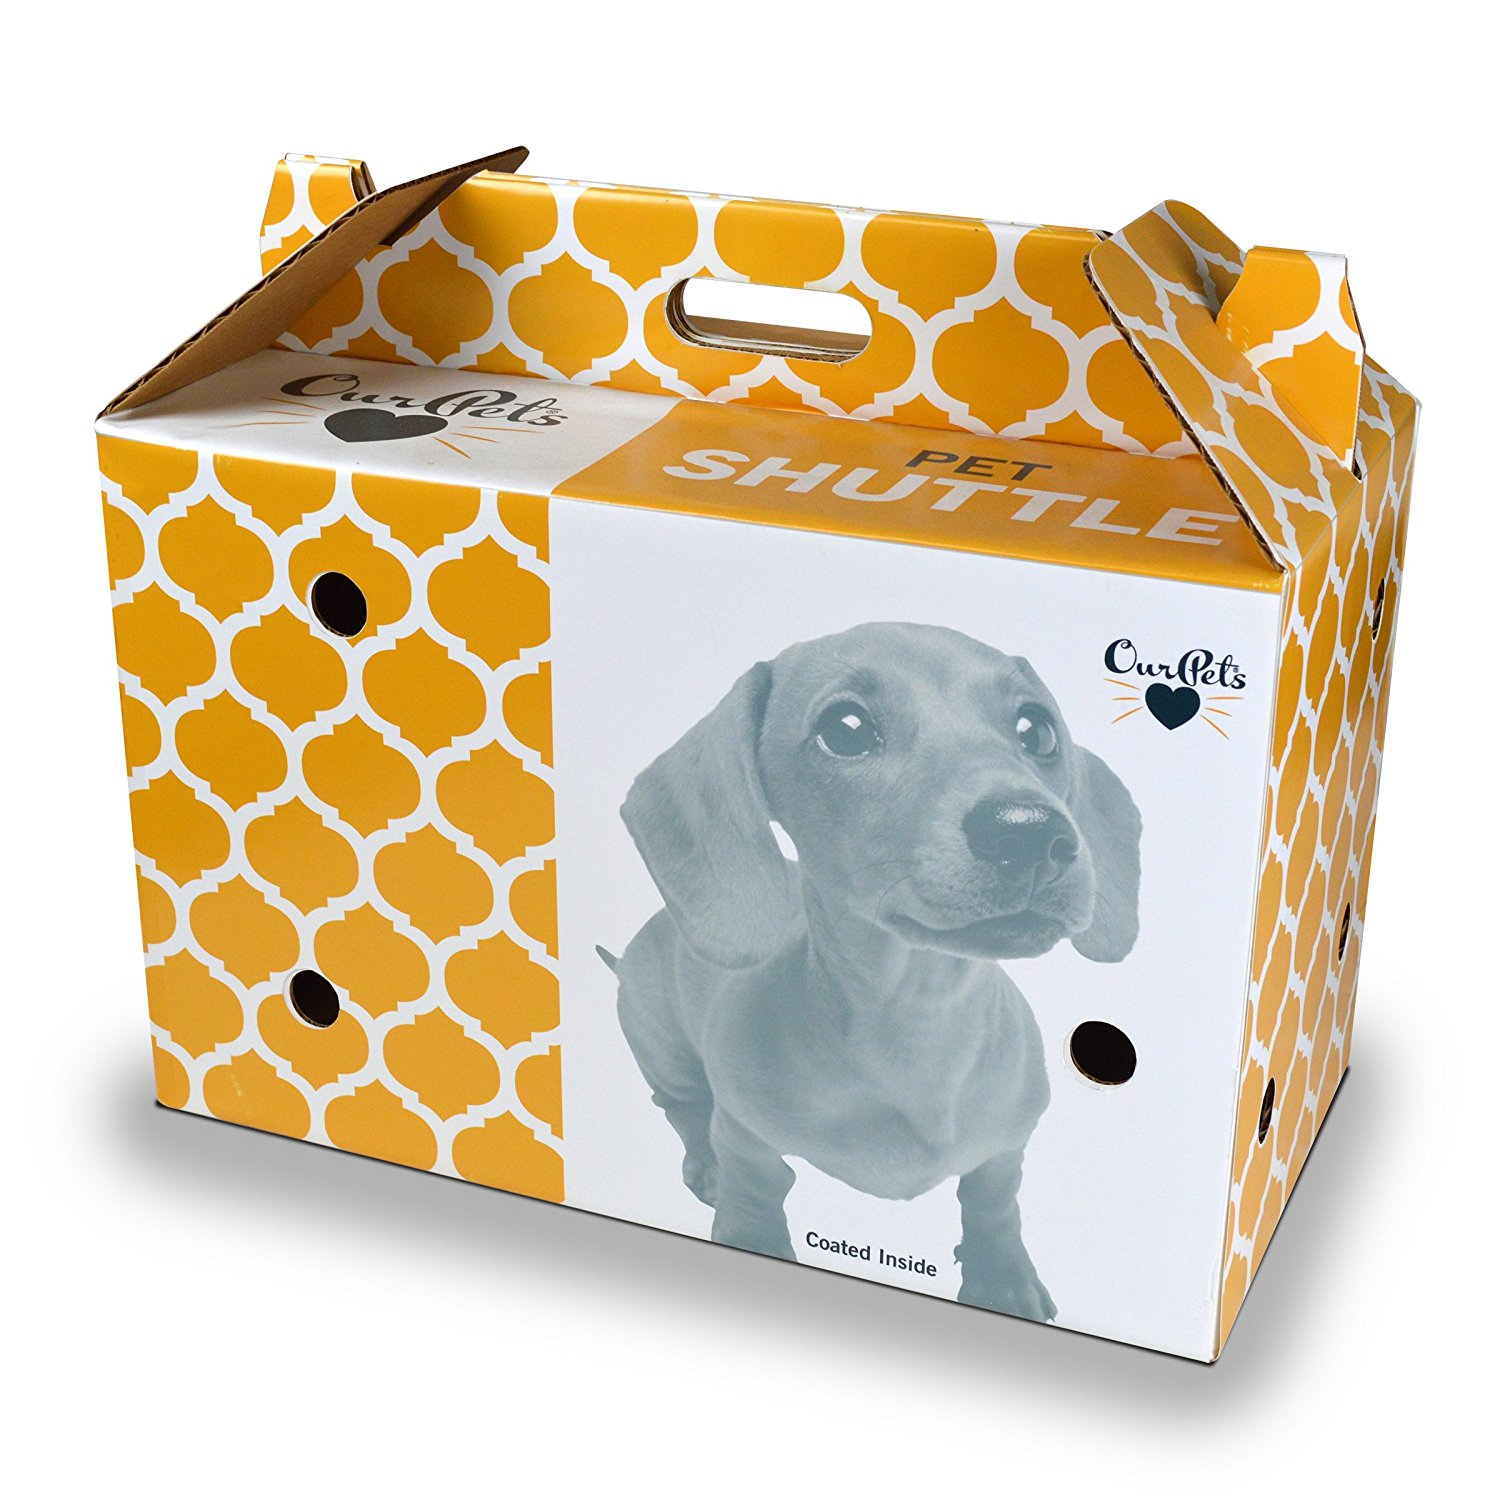 Ourpets Cardboard carrier